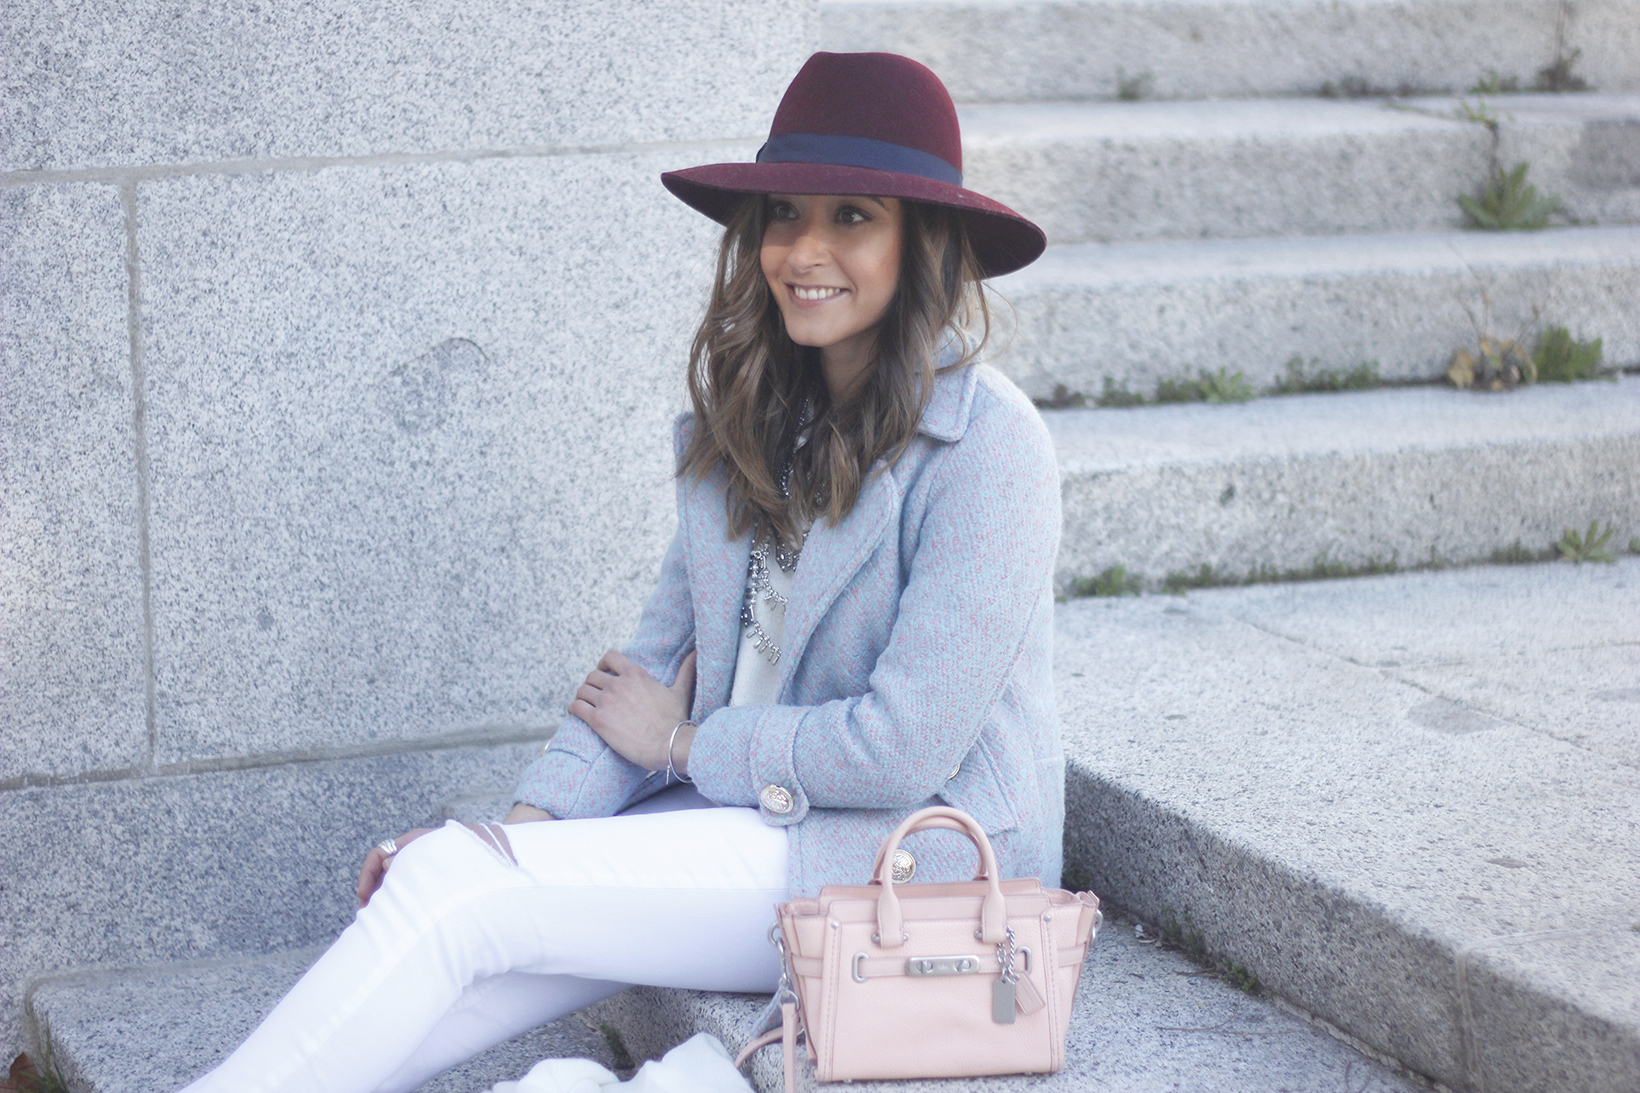 Blue Coat White outfit burgundy hat pink bag coach accessories style06